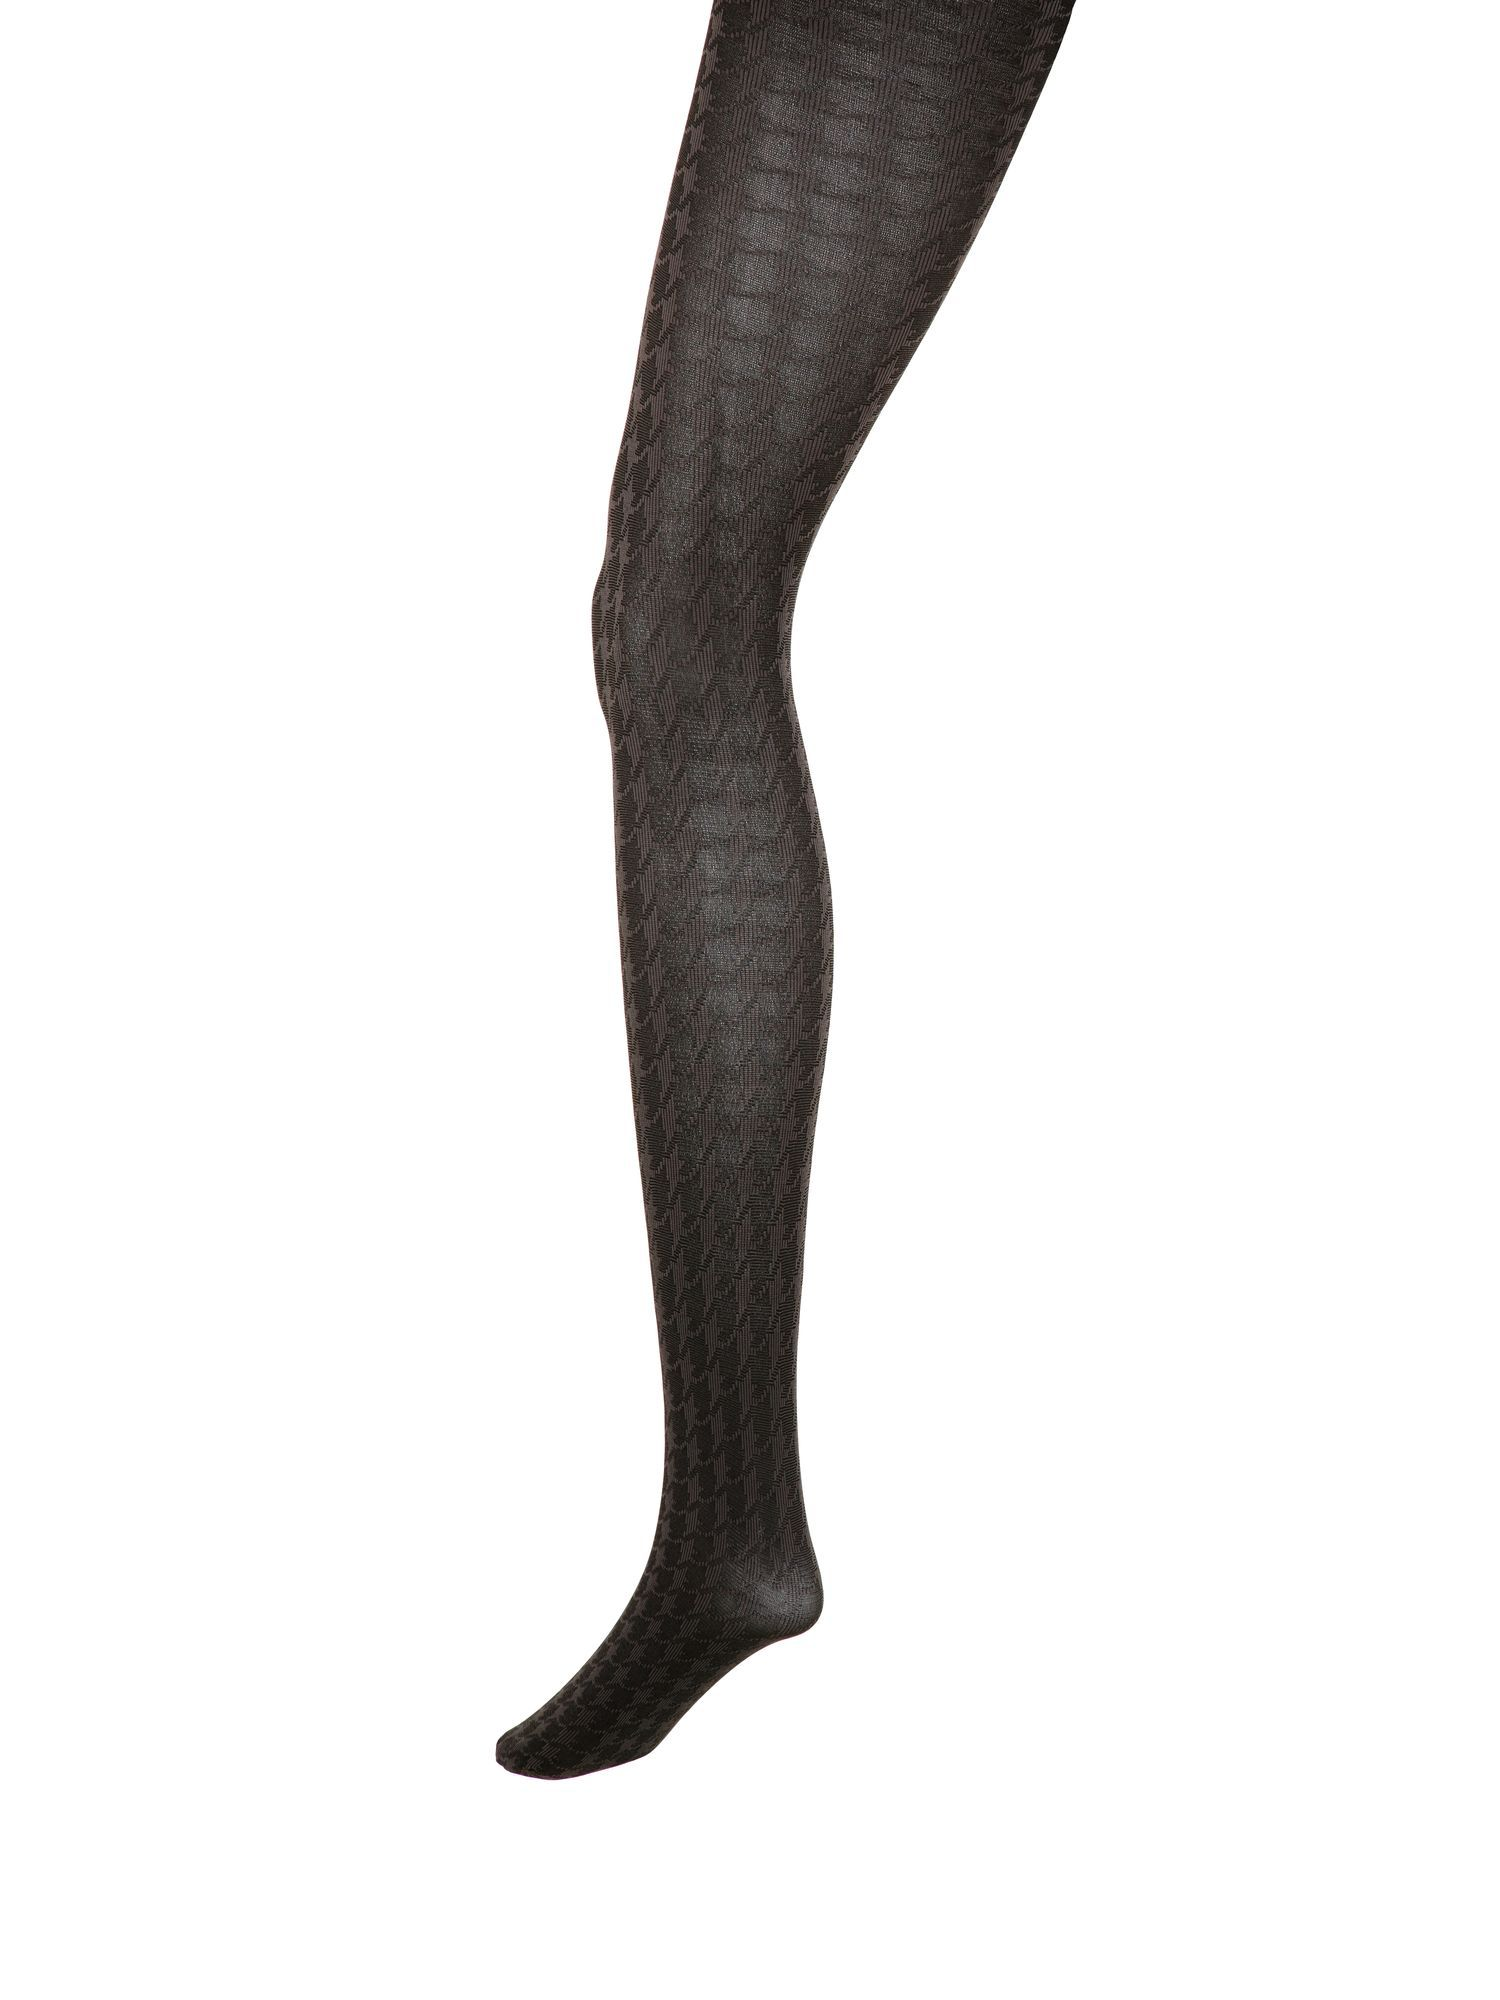 Dogtooth check tights.